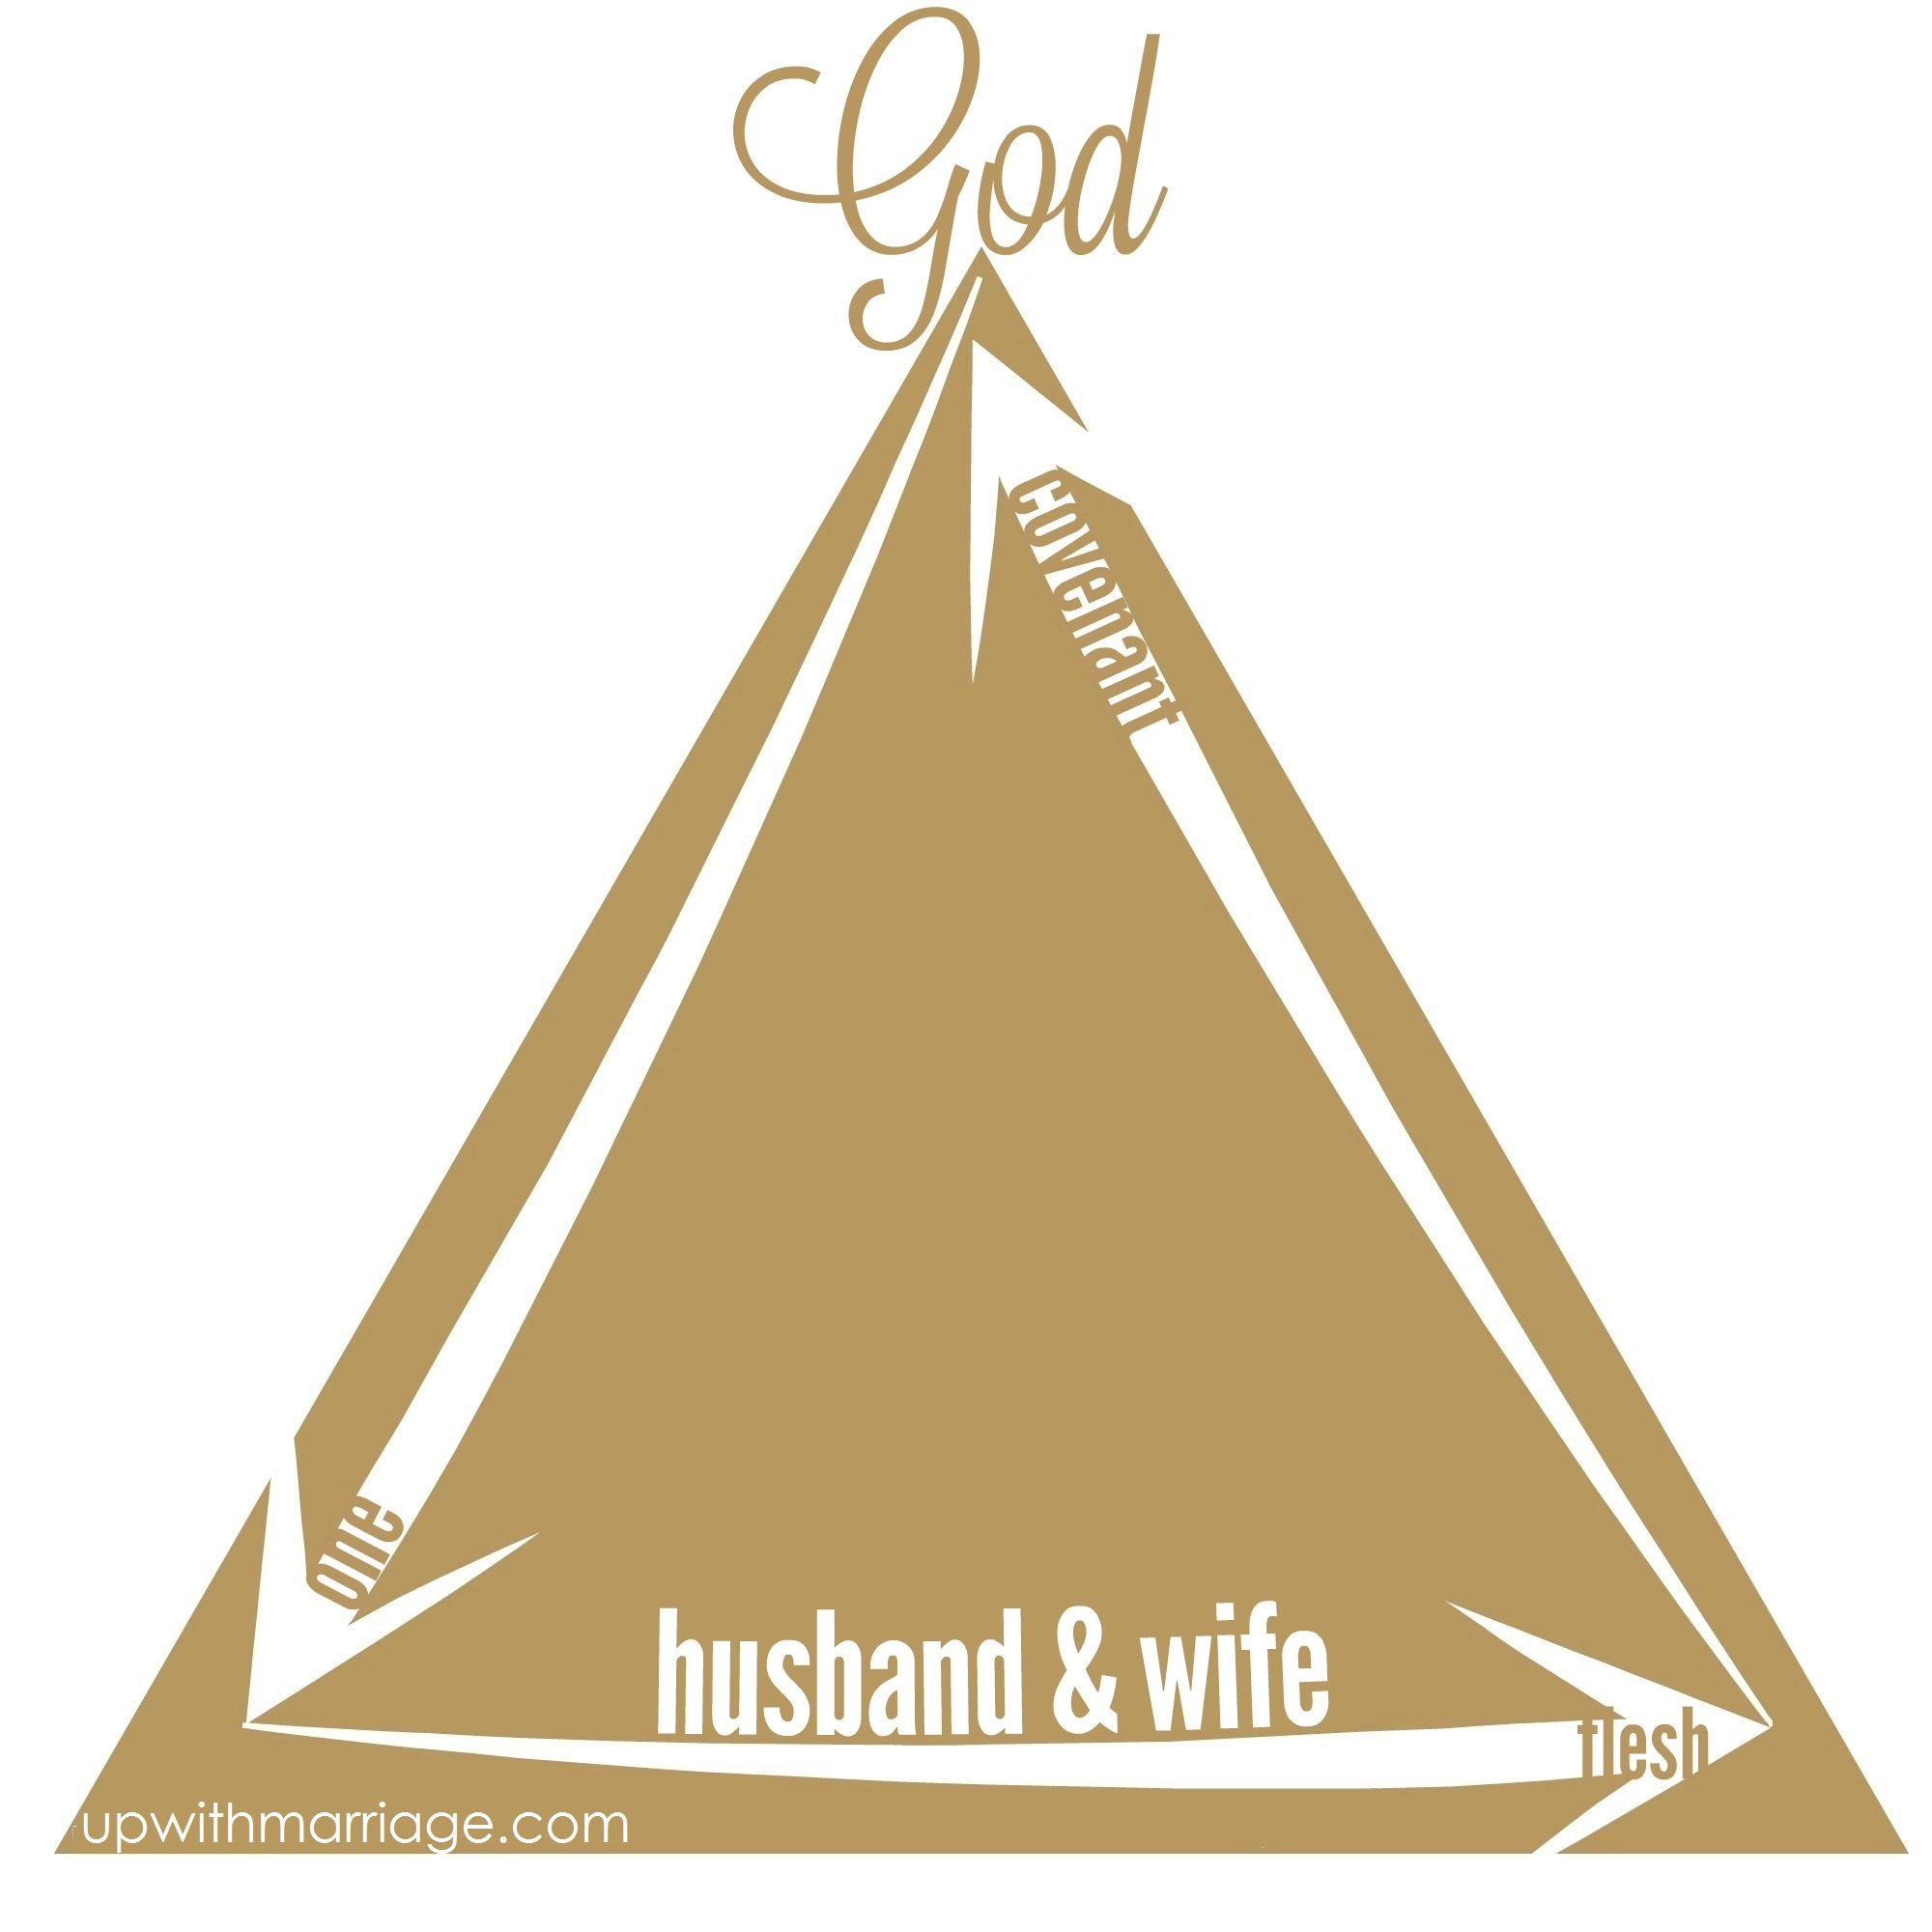 God-husband-wife clipart graphic stock Brothers & Sisters | graphic stock